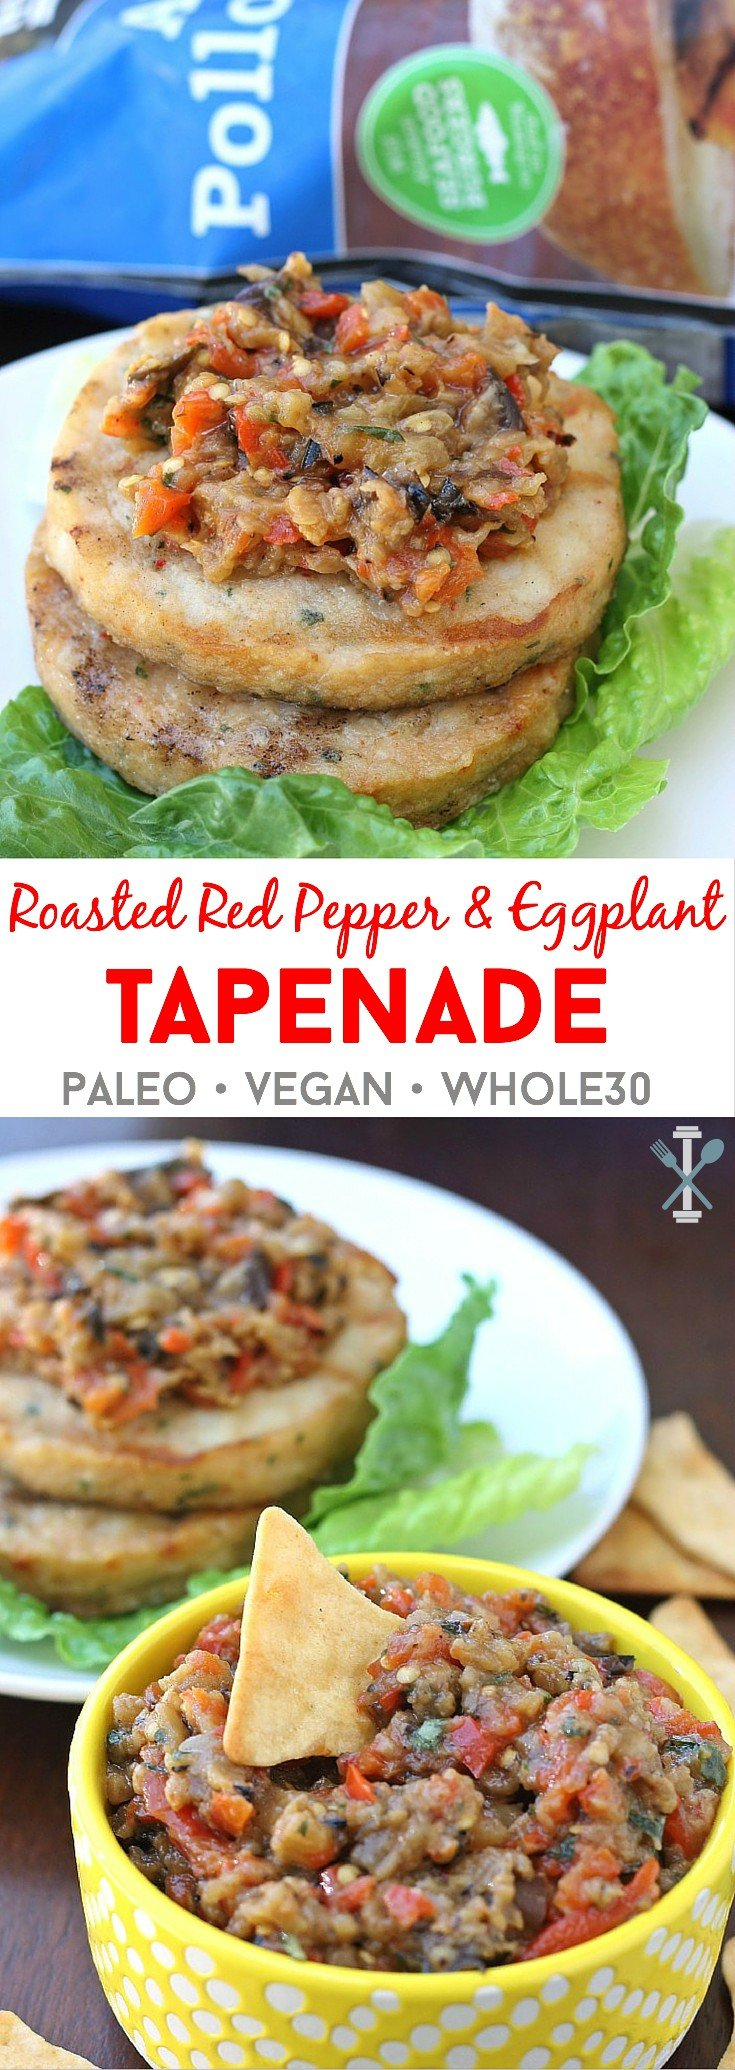 #ad #Swapyourburger This paleo, vegan, whole30 compliant roasted red pepper and eggplant tapenade is the perfect dip or condiment! Bursting with fresh flavor and perfect for spreading over fish burgers